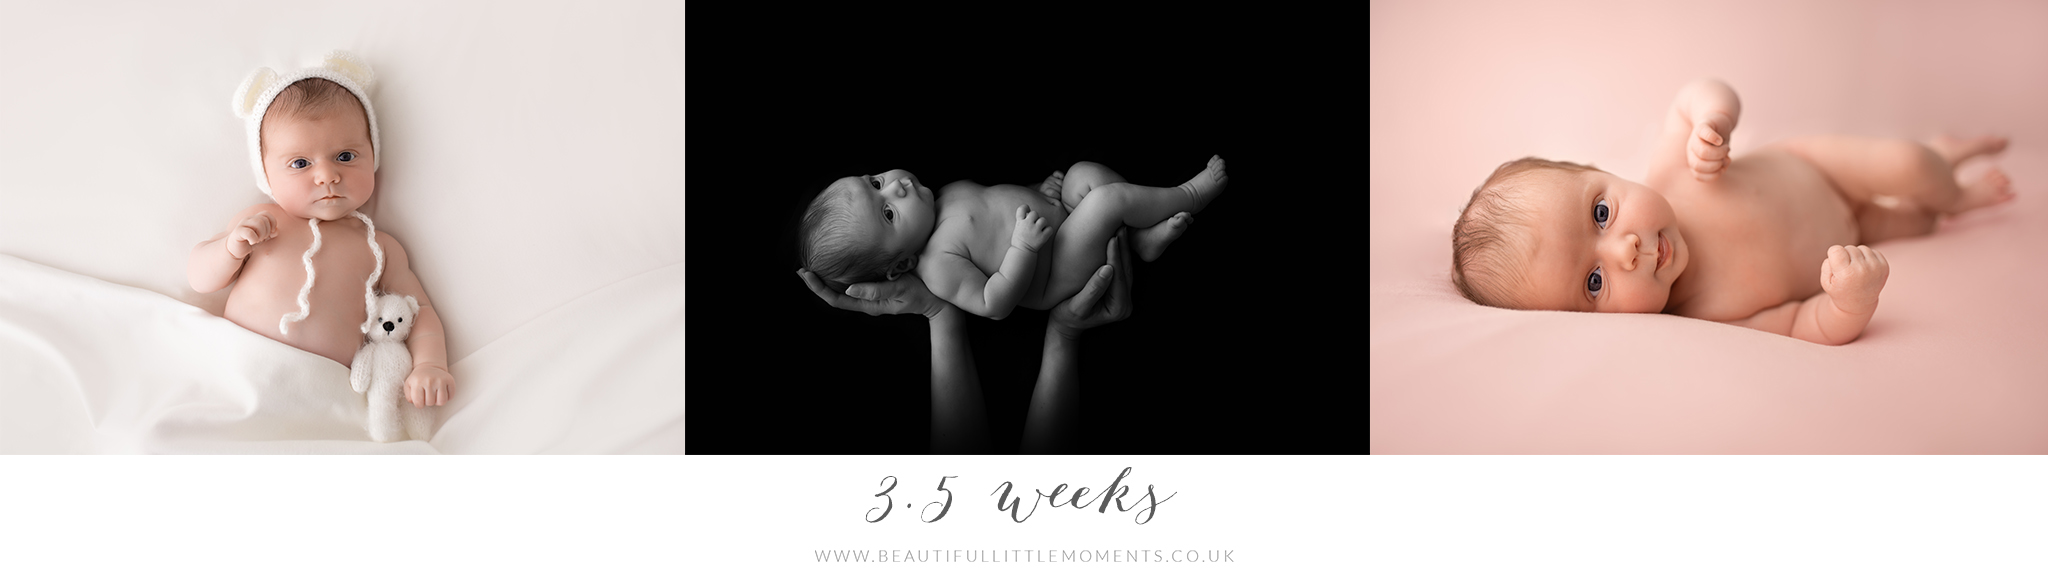 baby photos 3.5 weeks